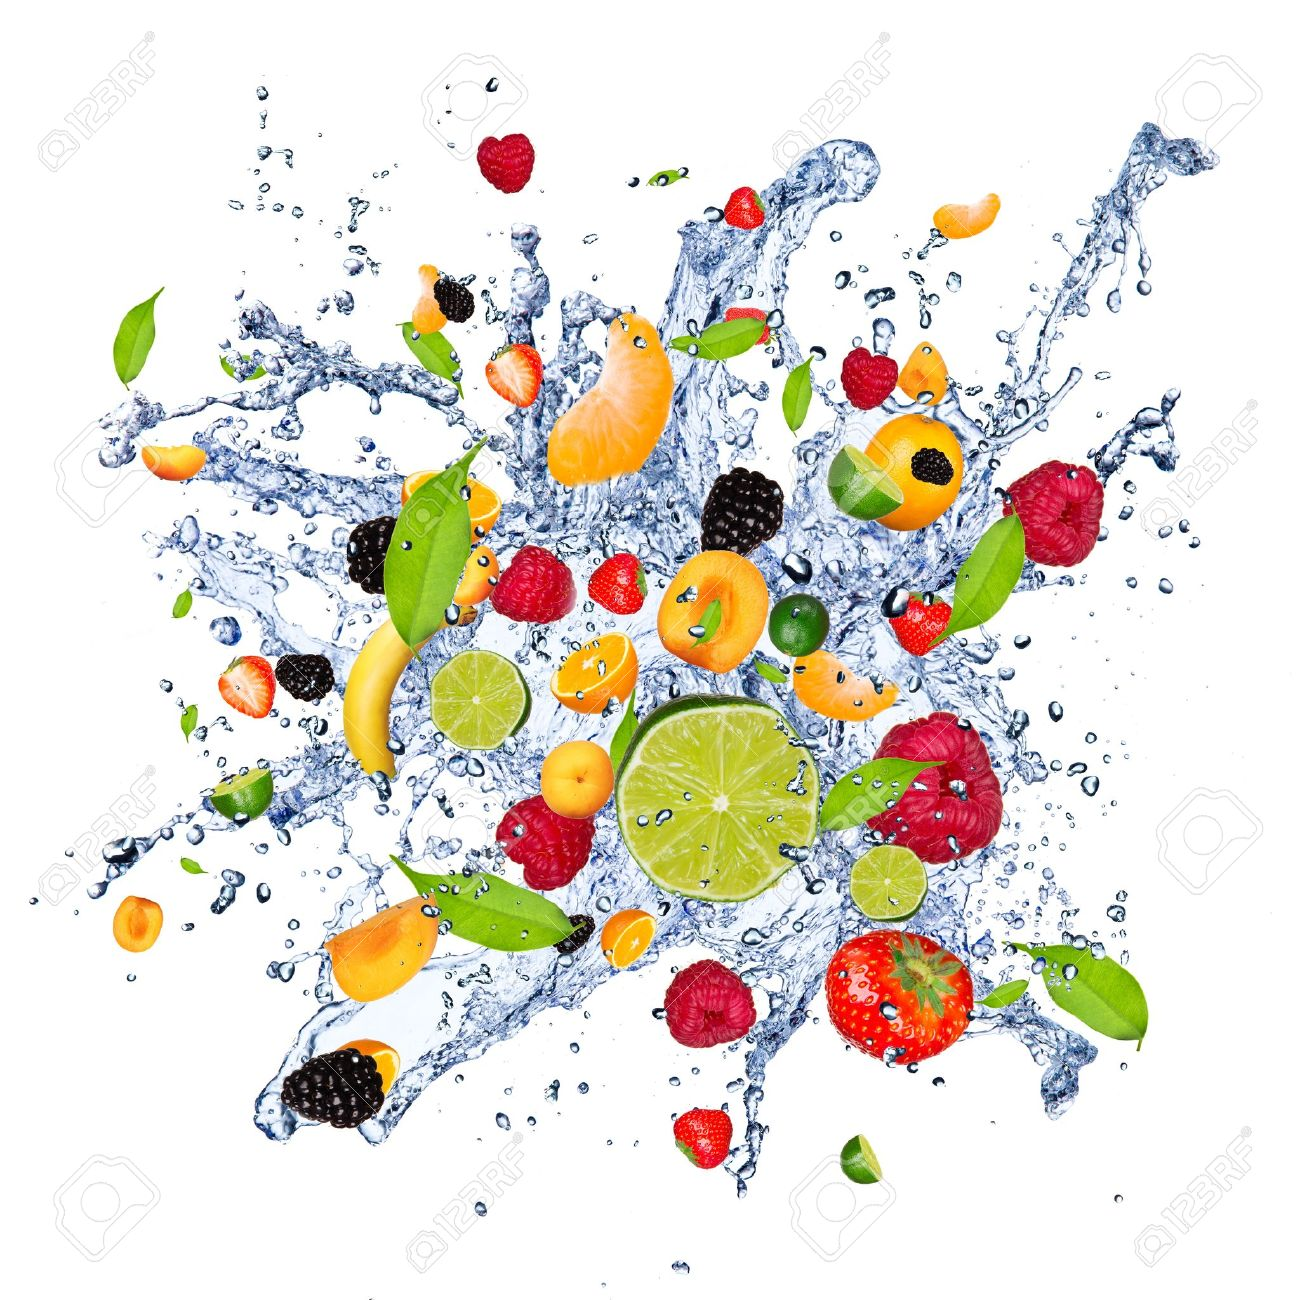 Fruit Water Splash Png - Fruit Mix In Water Splash, Isolated On White Background Stock Photo   13551982, Transparent background PNG HD thumbnail